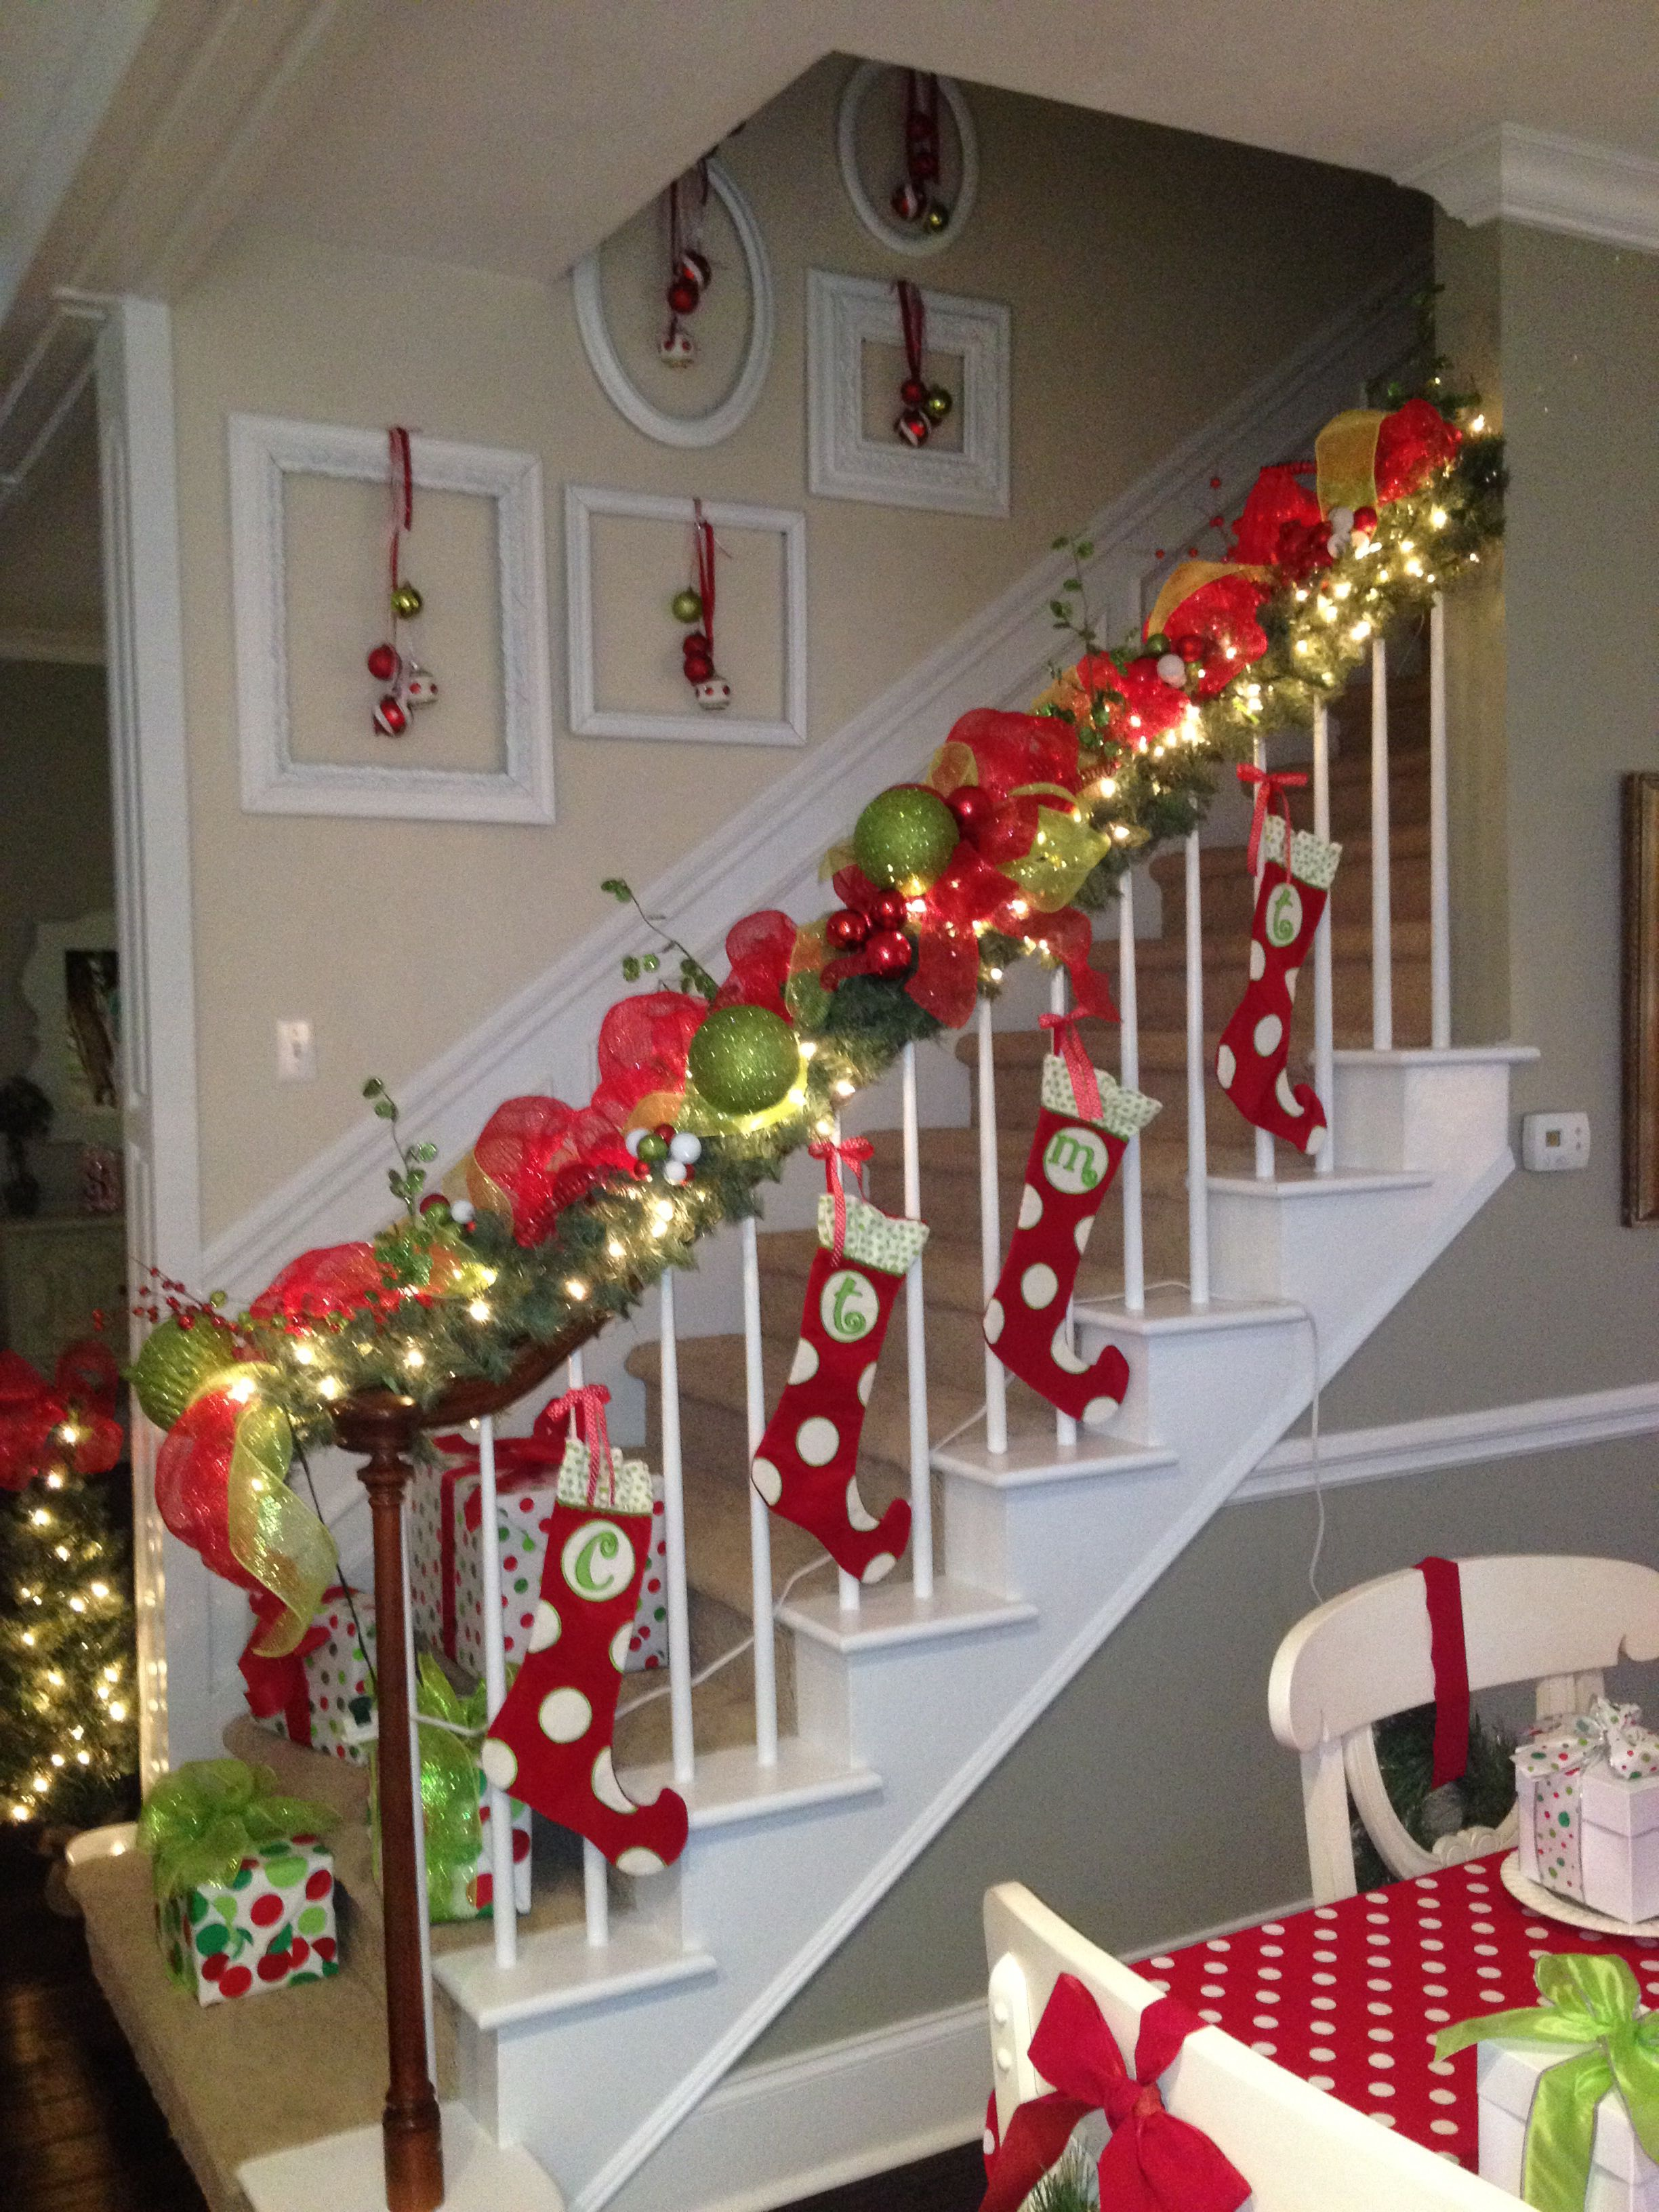 tied stockings to railings with ribbon hung ornaments on antique picture frames christmas crafts - Decorating Banisters For Christmas With Ribbon